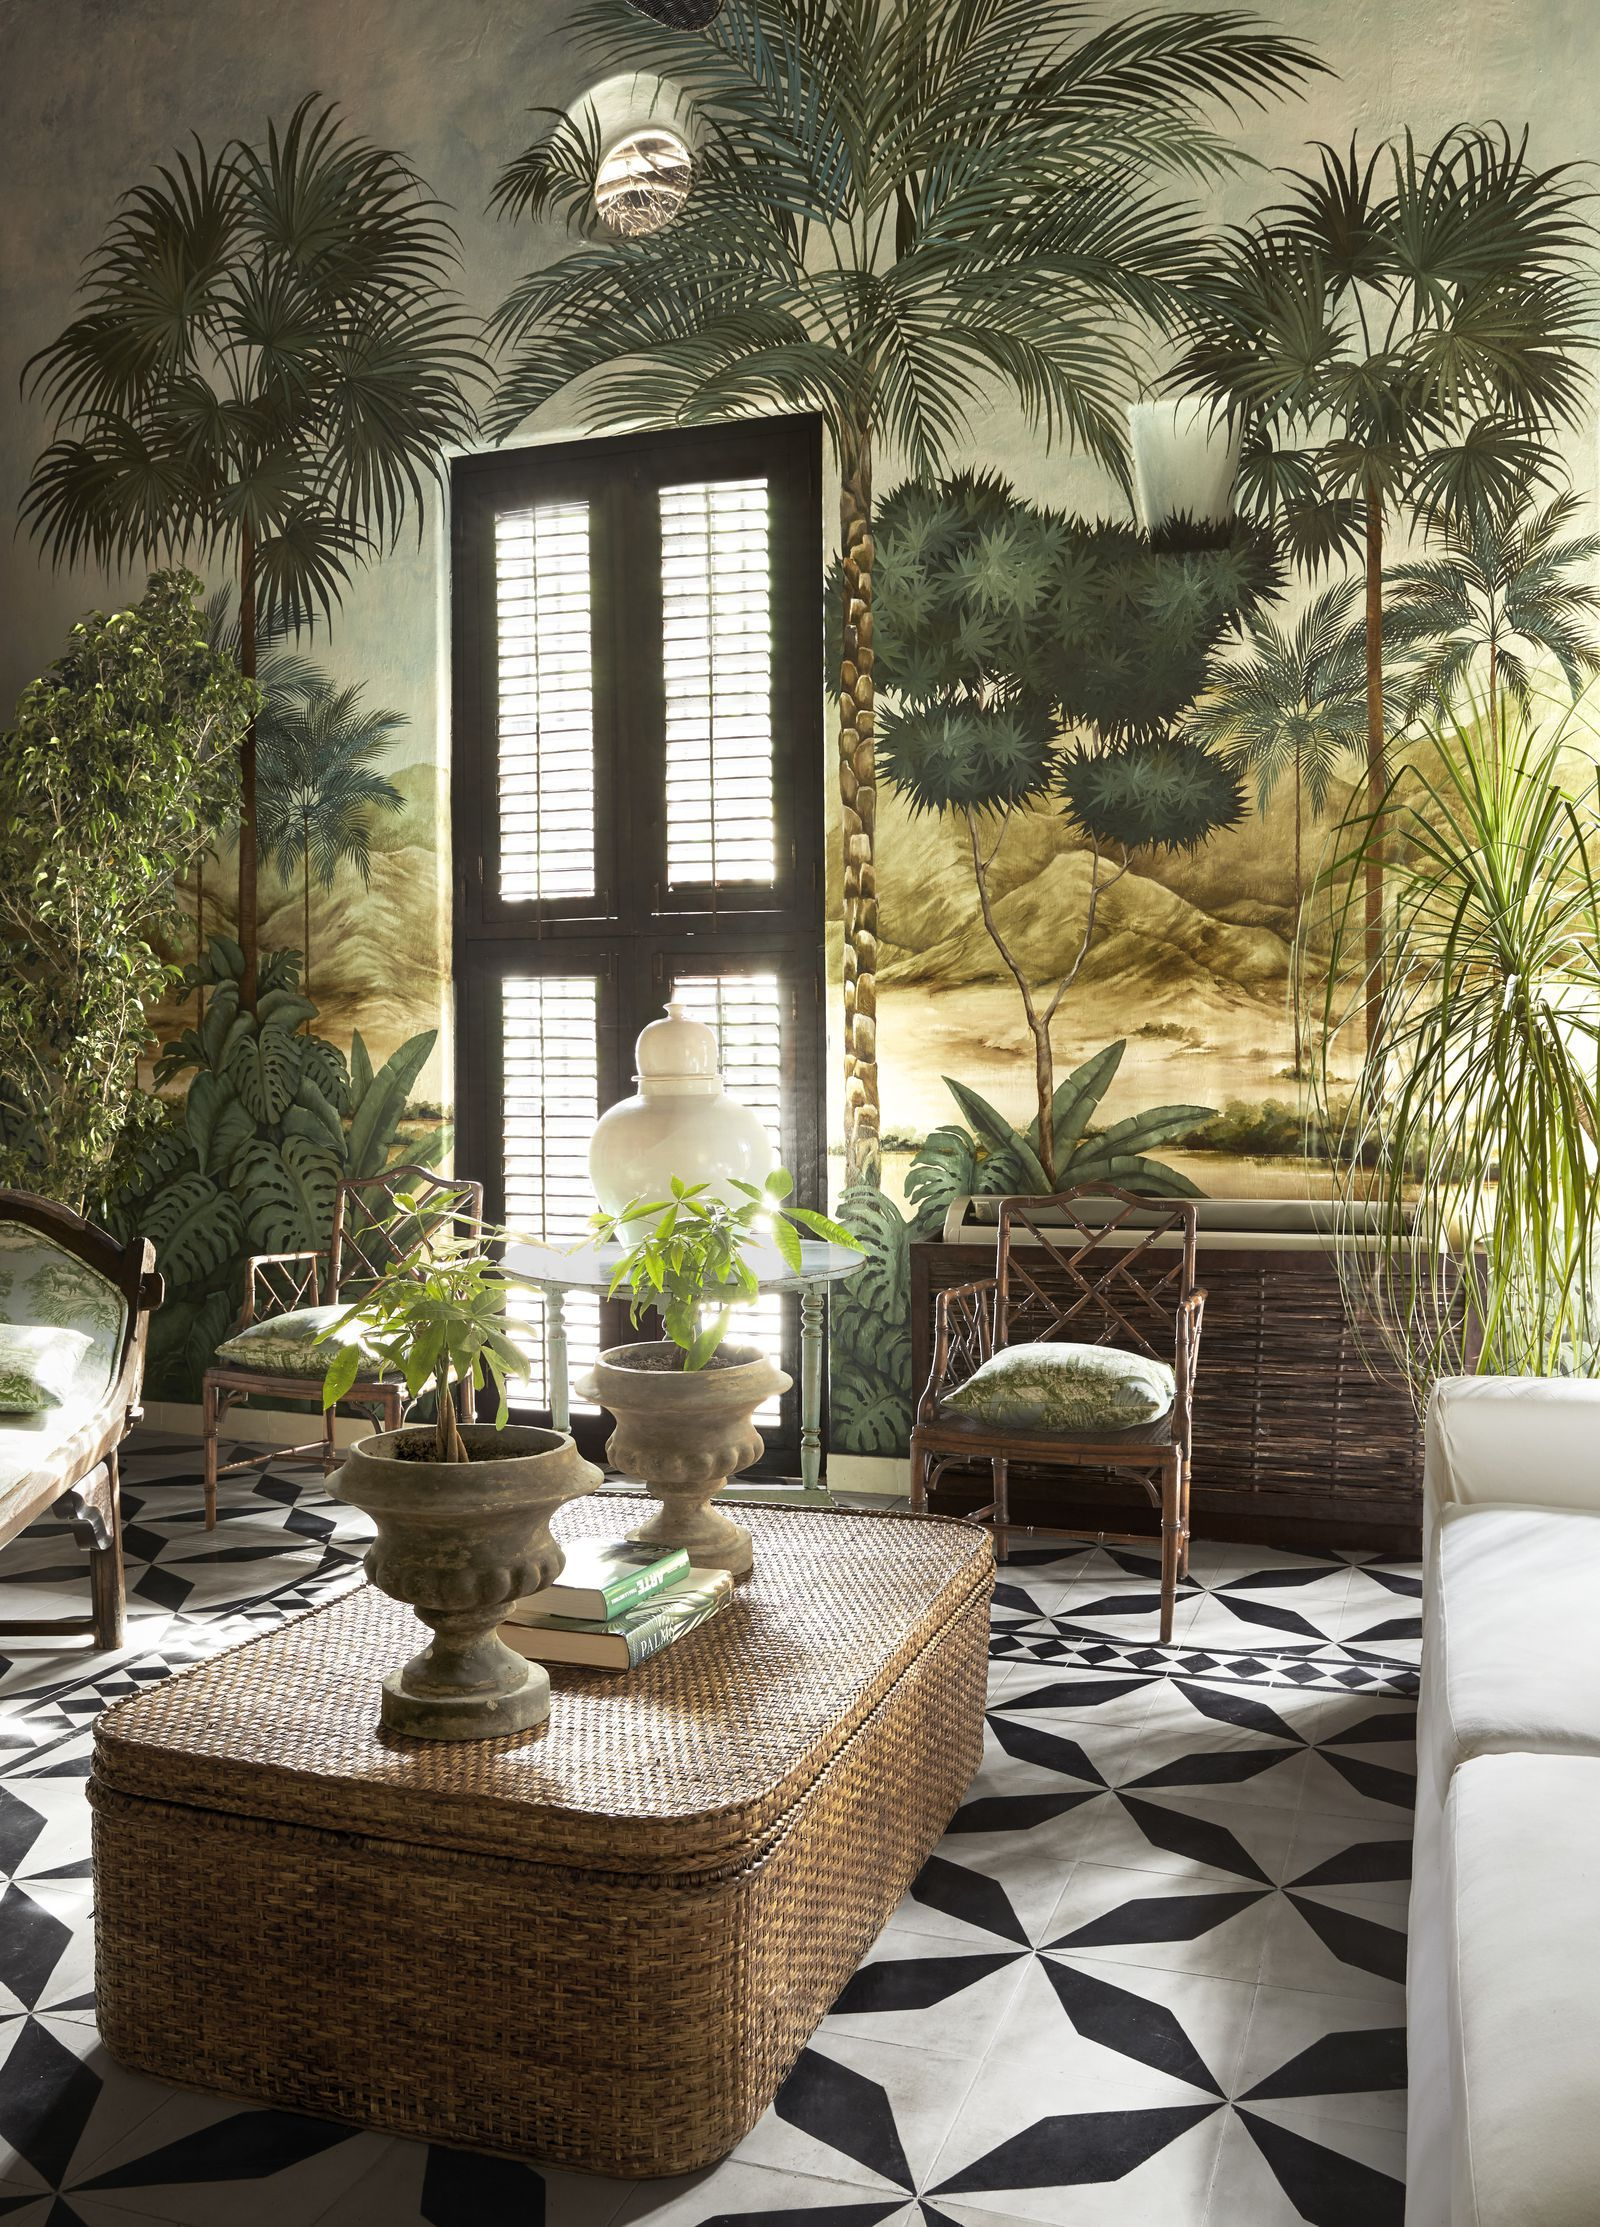 This Colombian Fashion Designer Brings a Sophisticated Spirit Into Her Cartagena Home